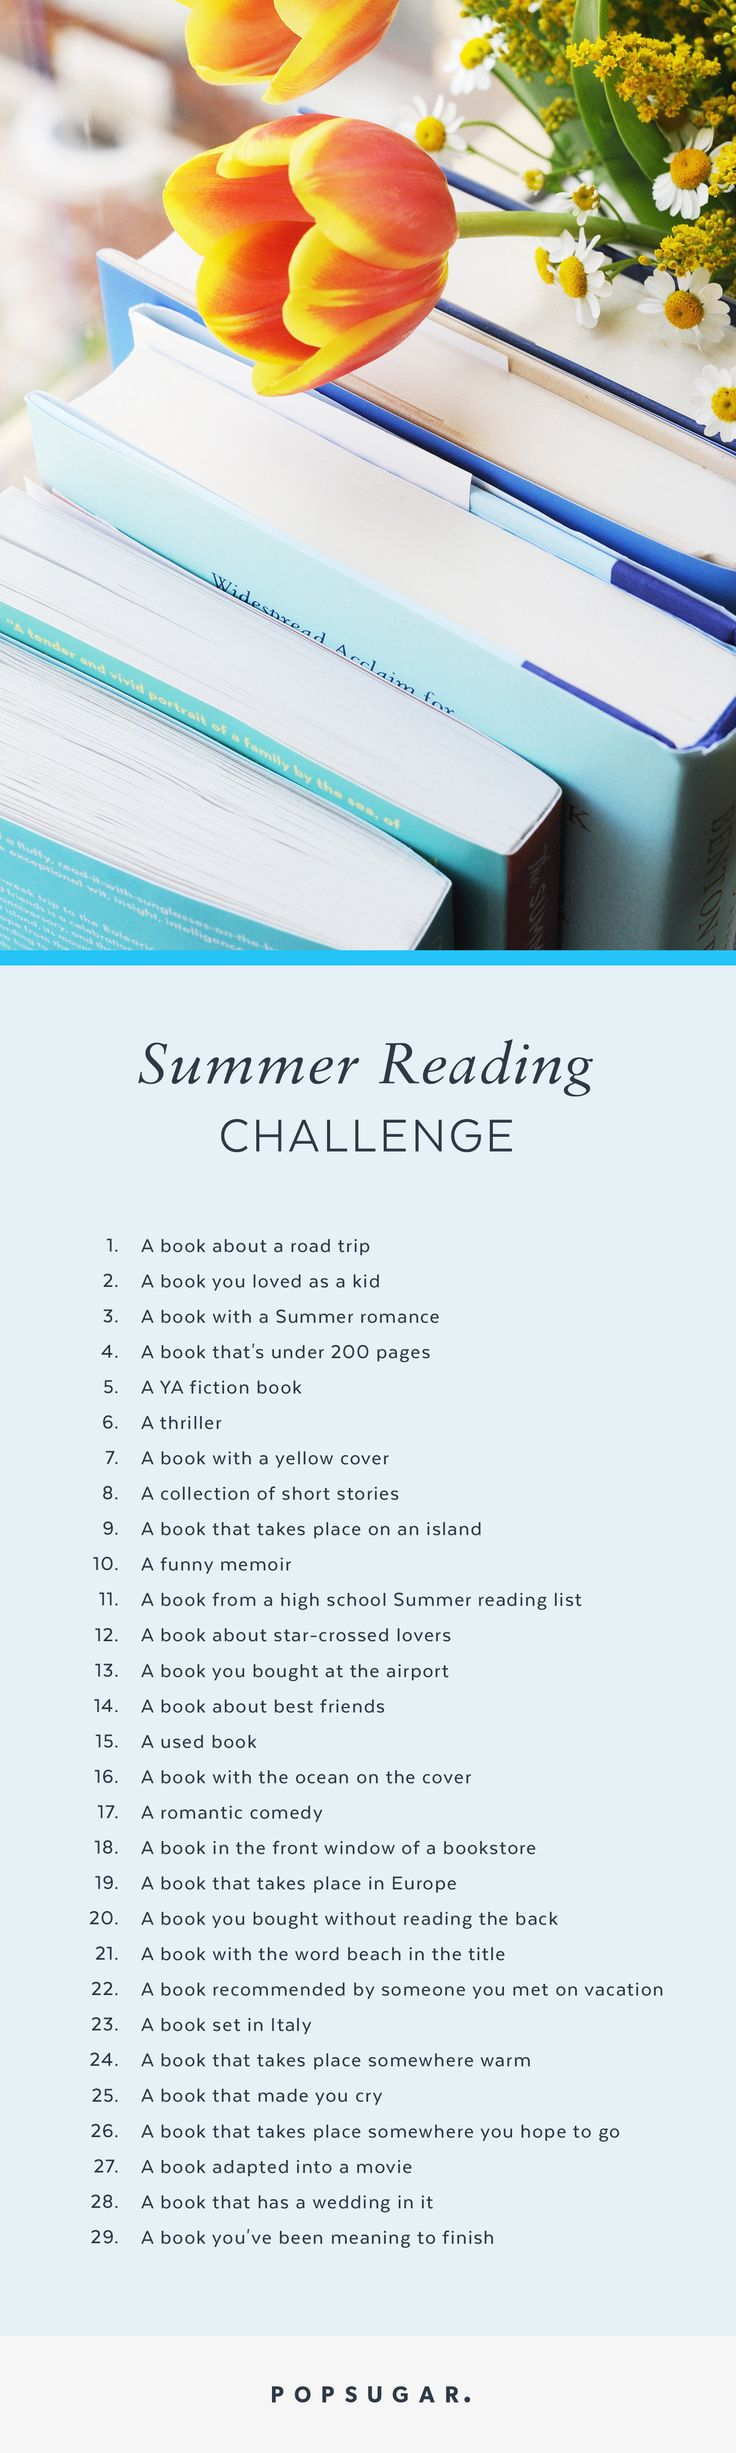 Get A Head Start On Your Summer Reading With This Epic Summer Reading  Challenge For 2016